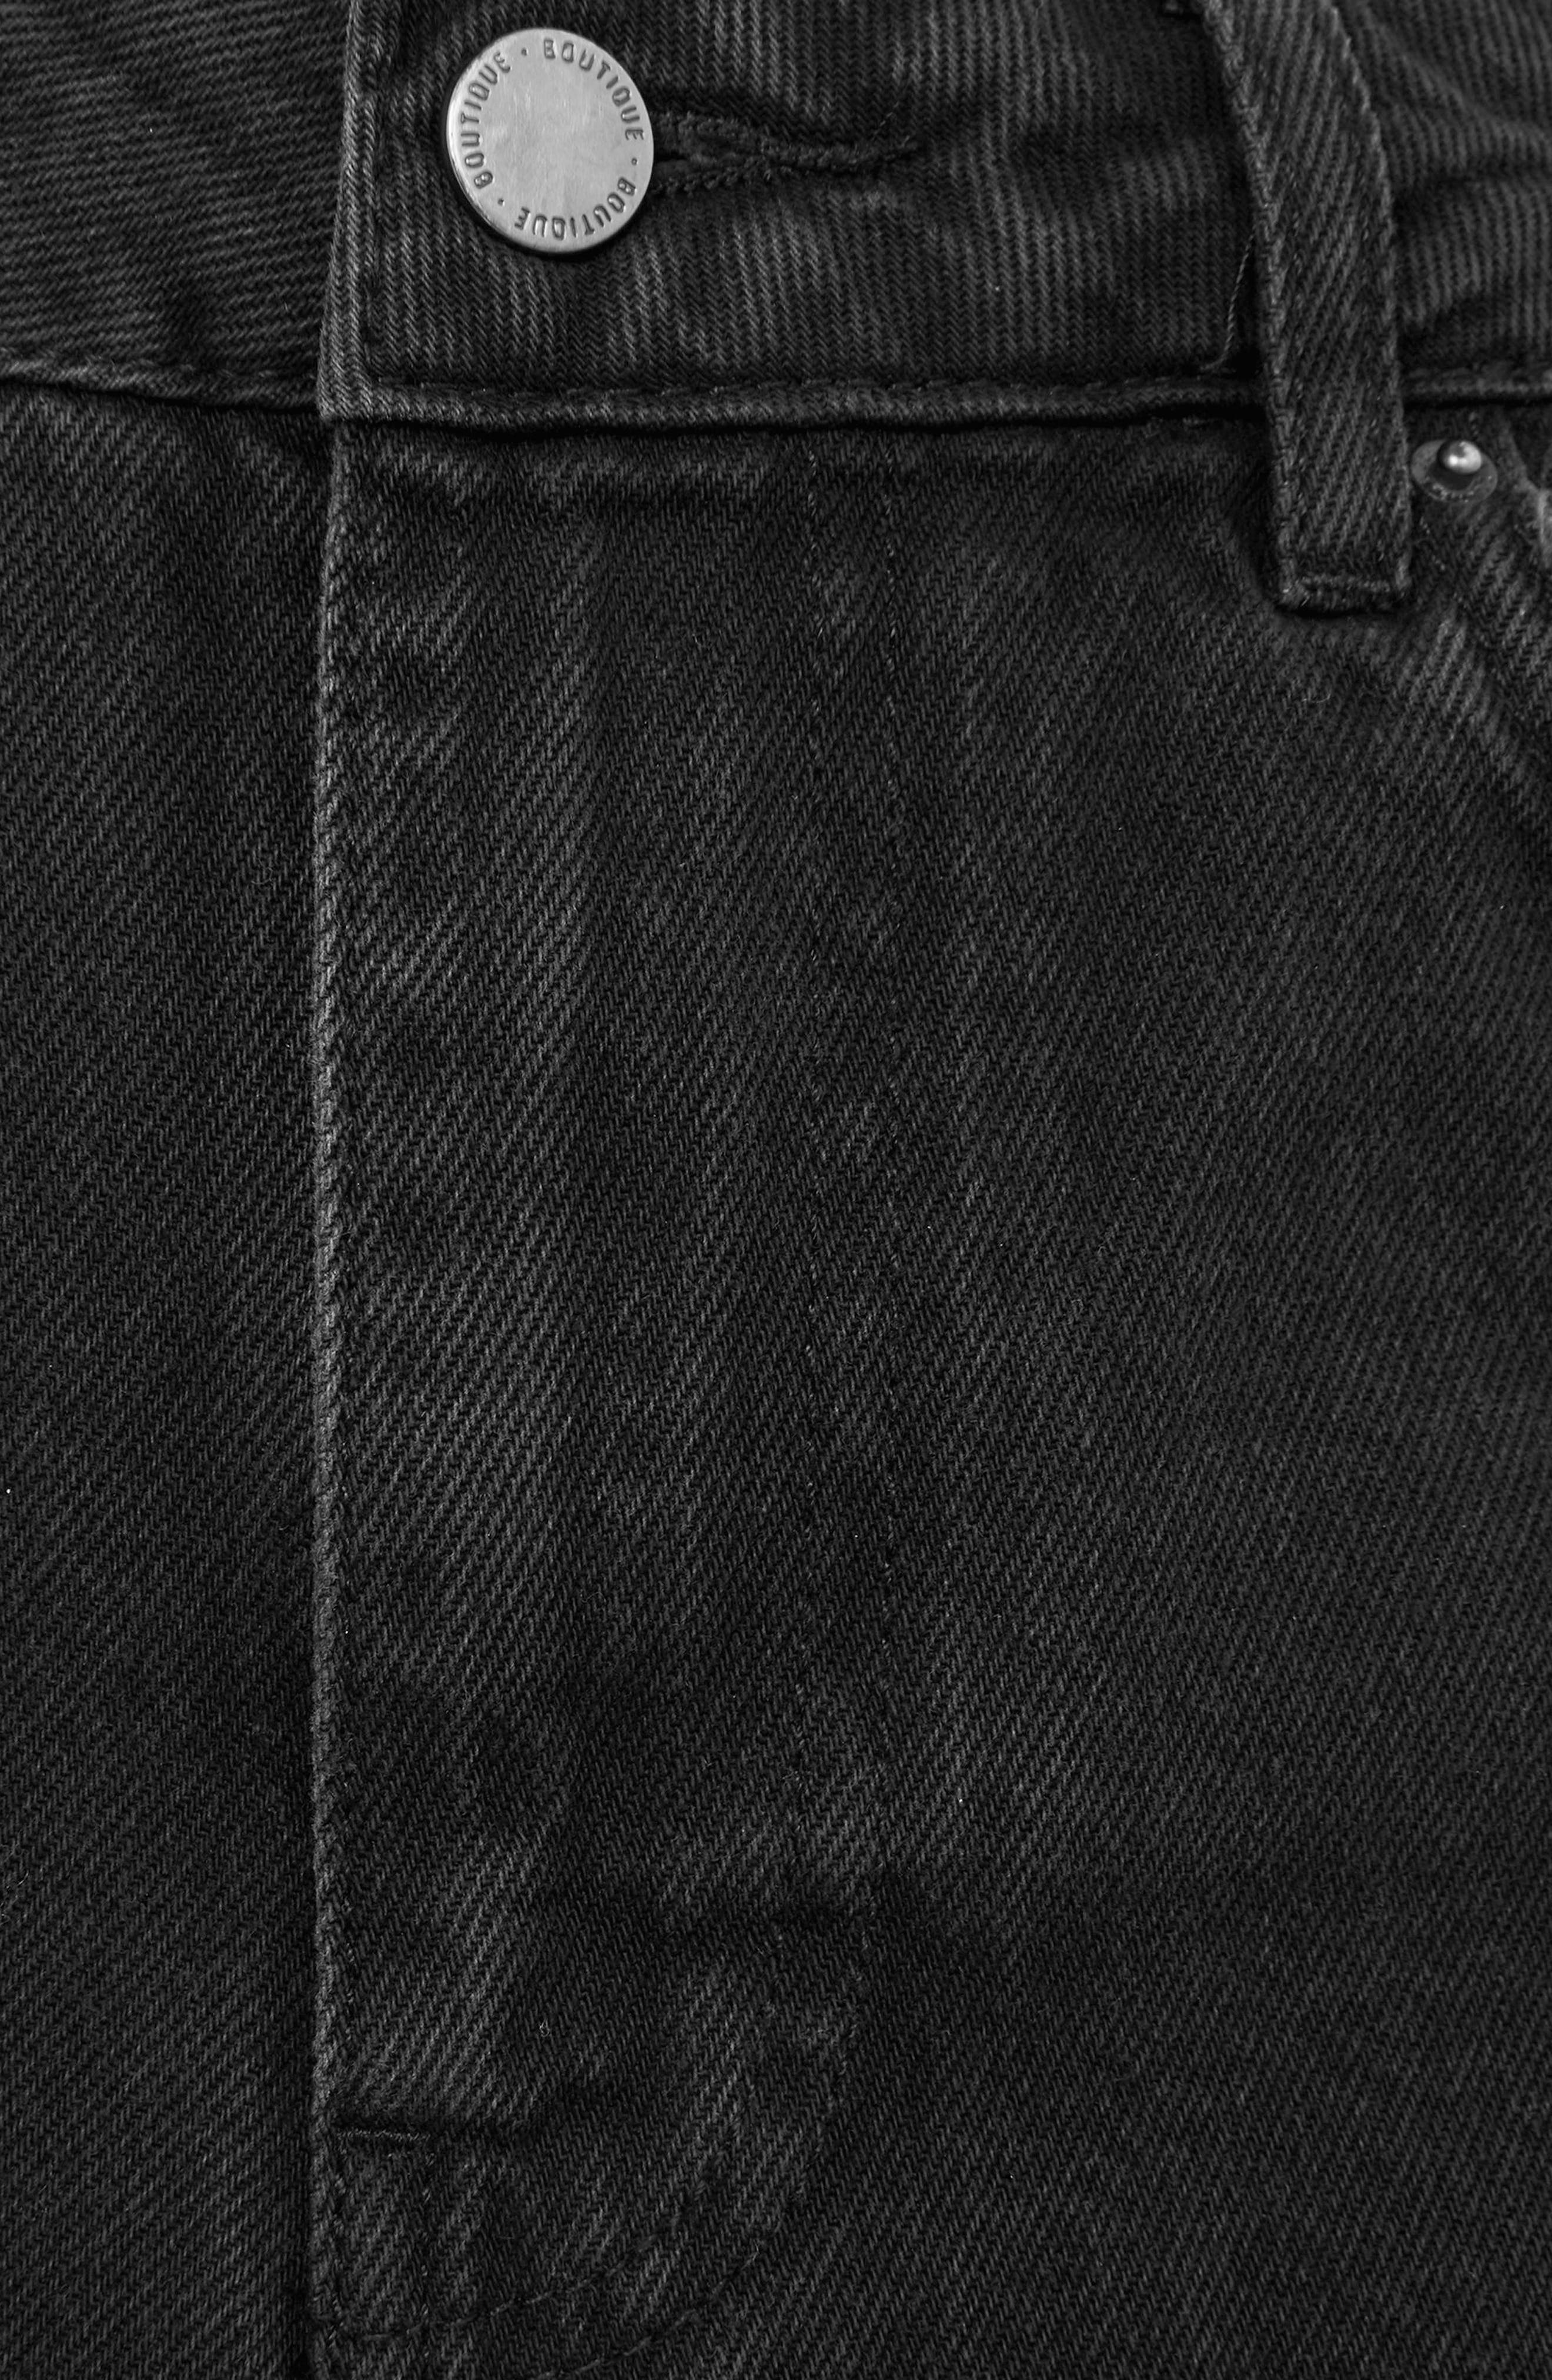 Distressed Jeans,                             Alternate thumbnail 3, color,                             Washed Black